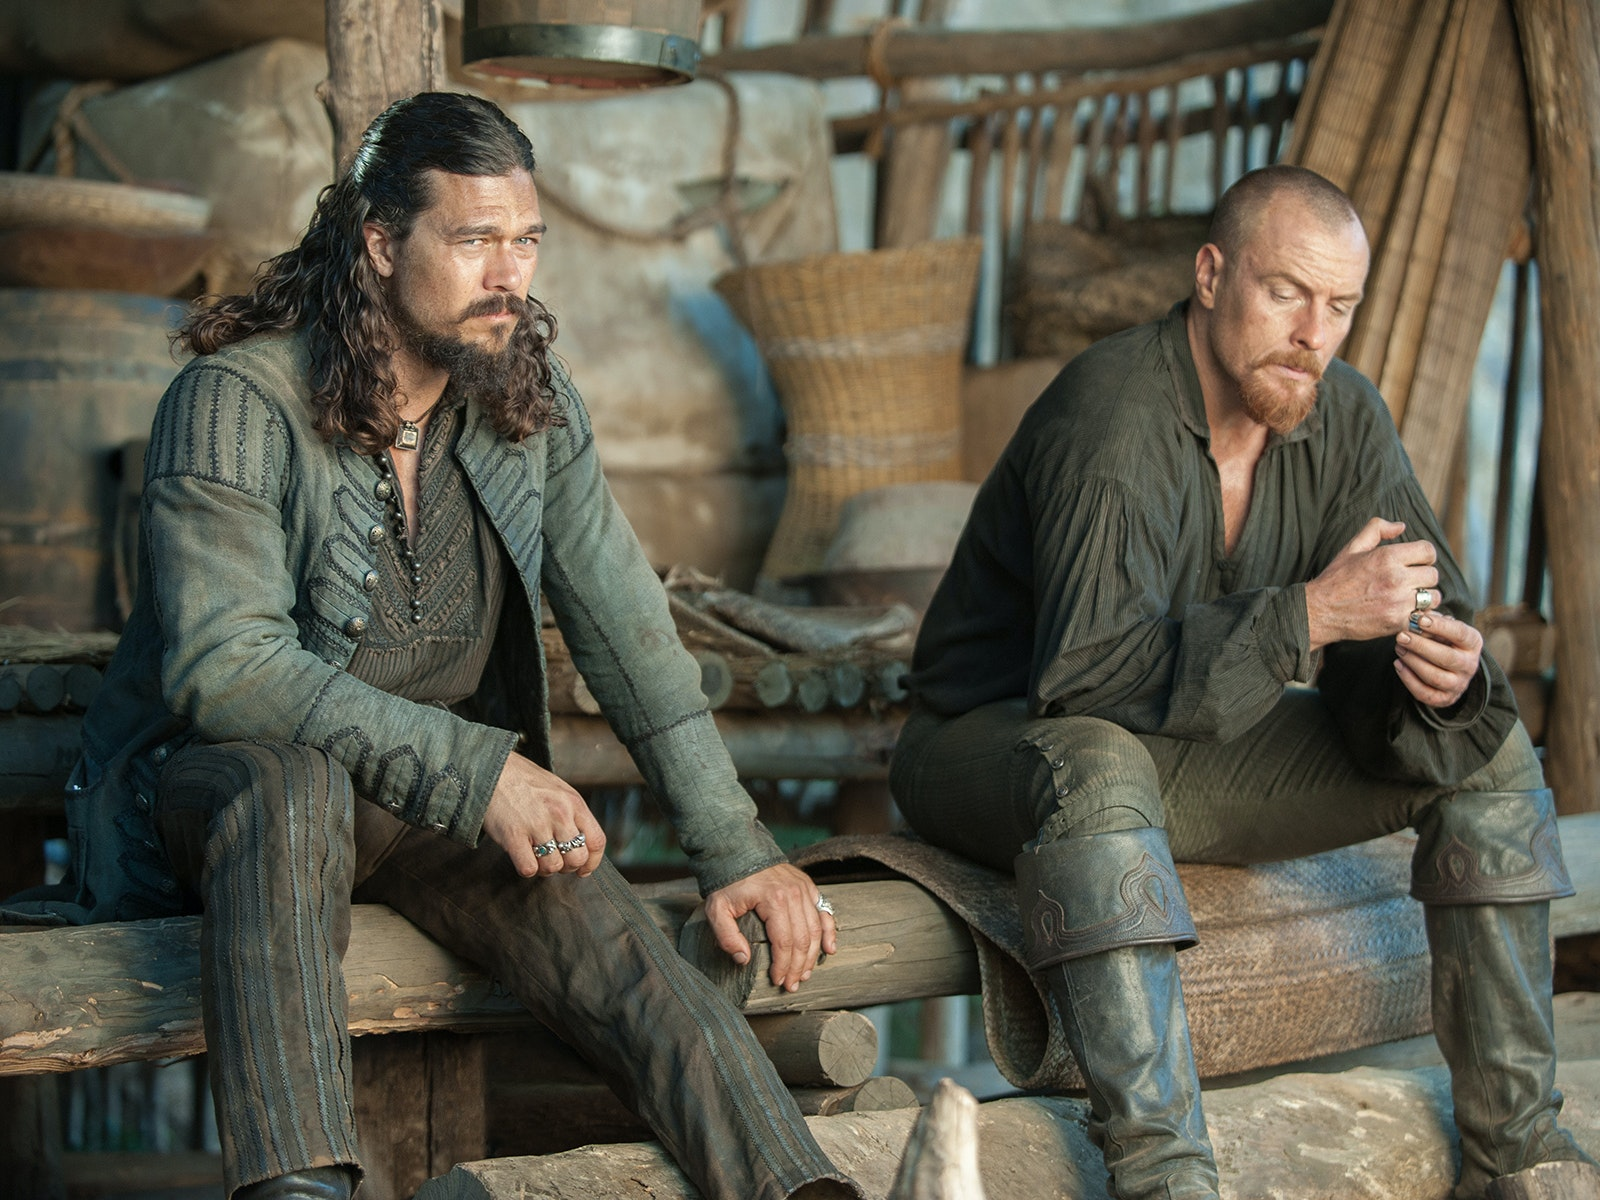 It's Time for the Emmys and the Golden Globes to Stop Ignoring 'Black Sails'